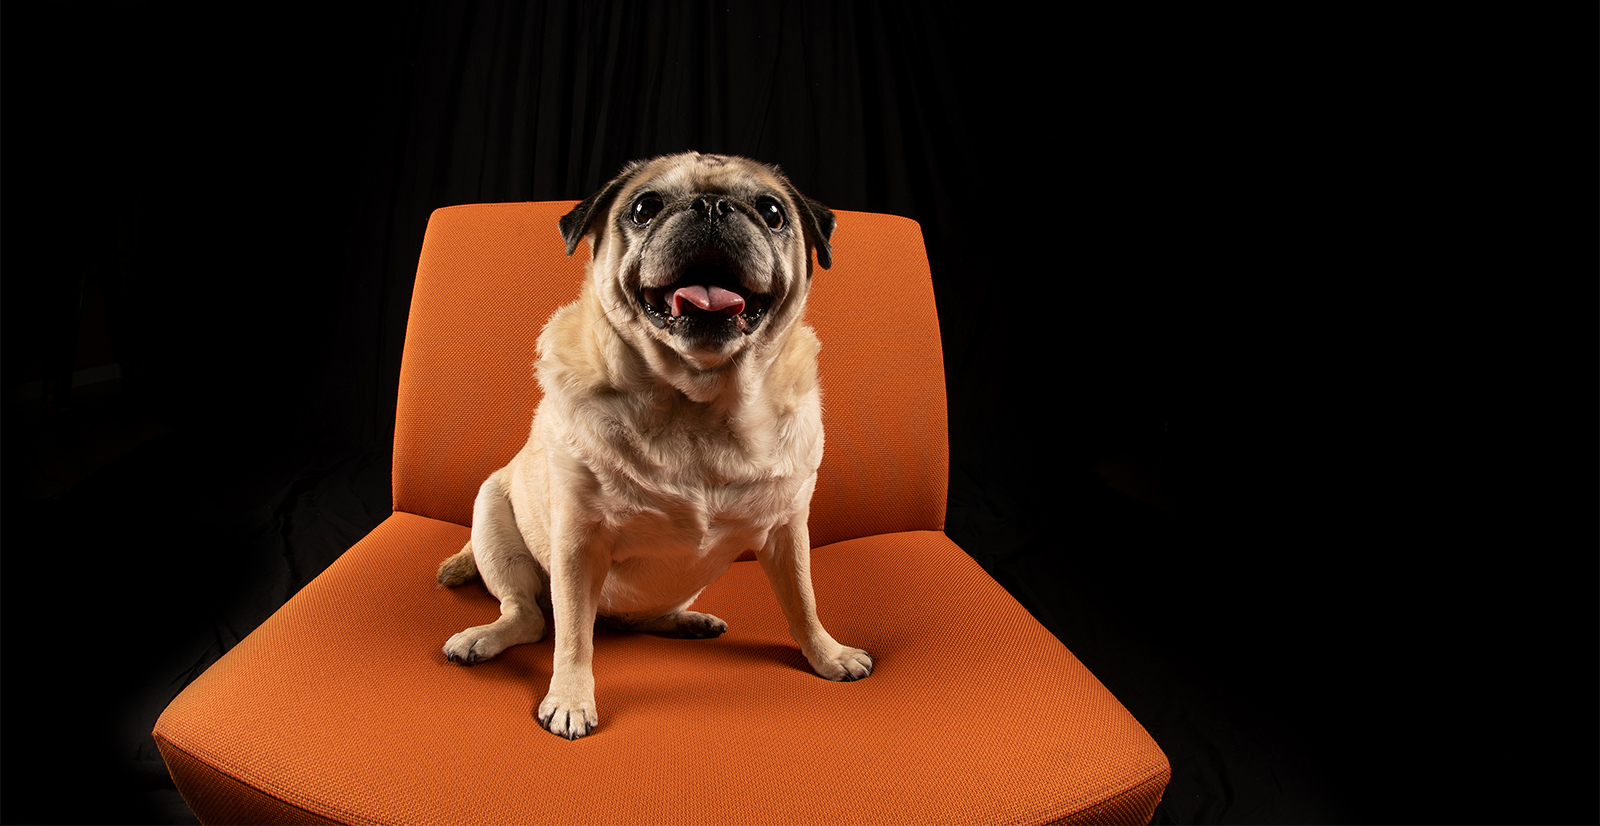 Pug sitting on a chair in a studio.